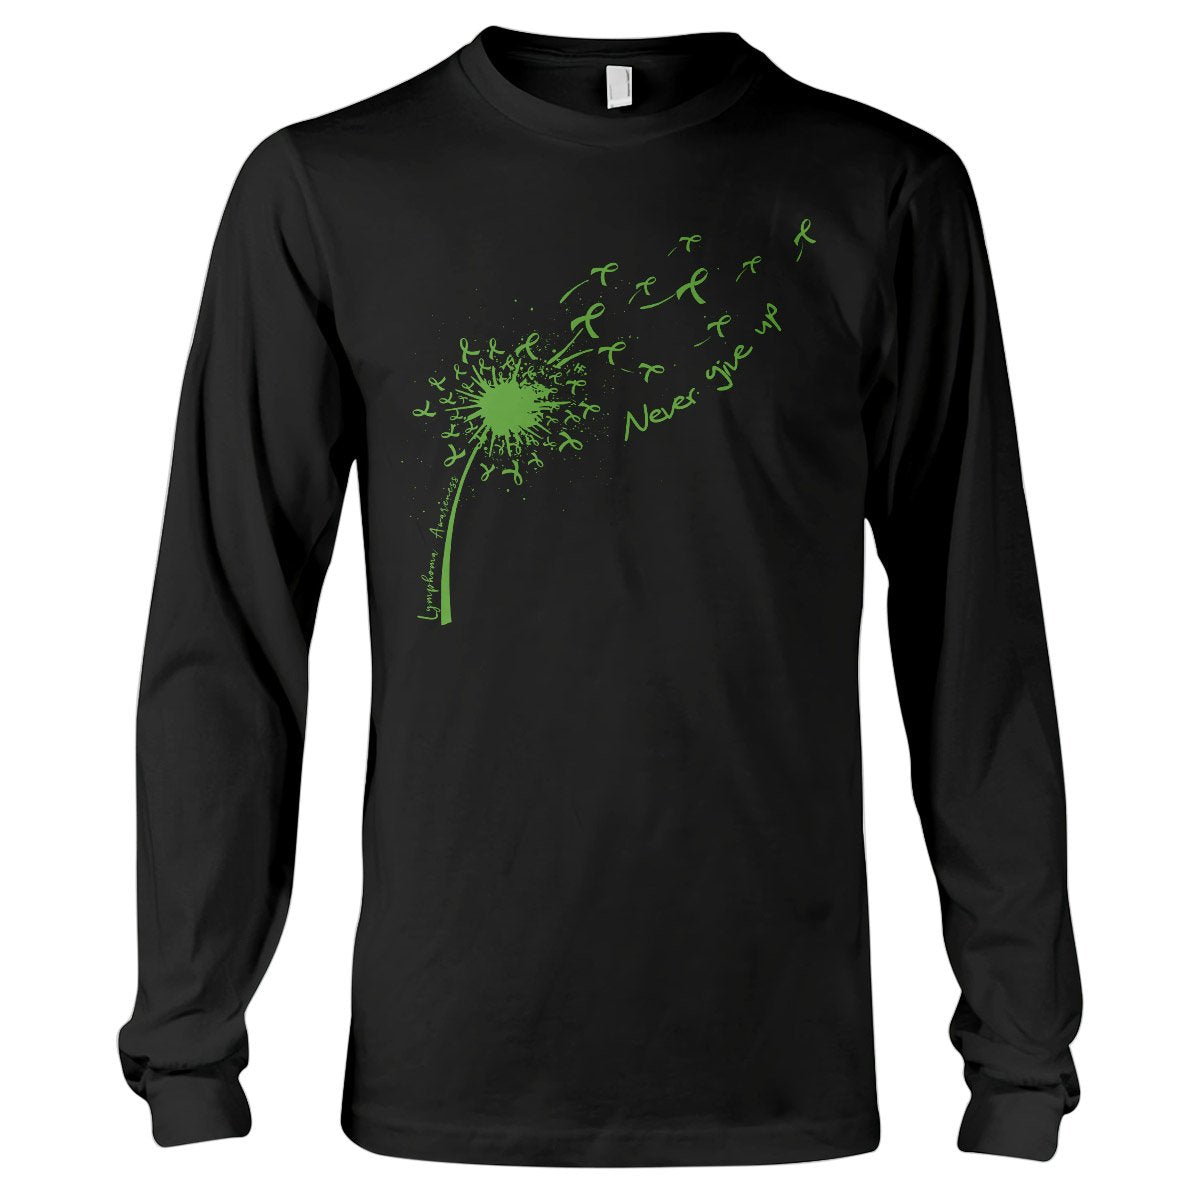 Dandelion Lymphoma Awareness EZ20 3012 Long Sleeve T-Shirt